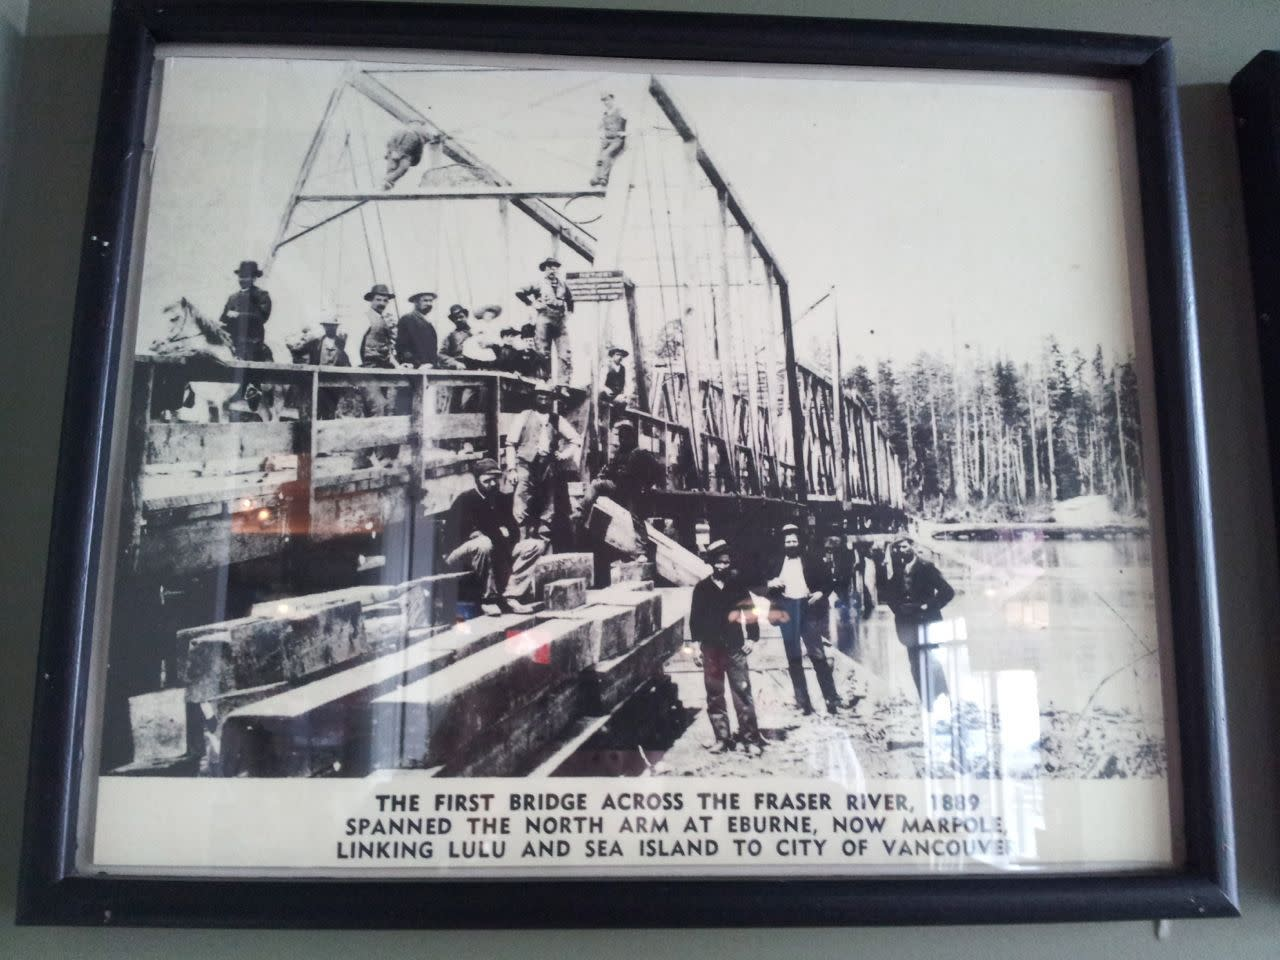 first bridge across Fraser River, Lulu Island